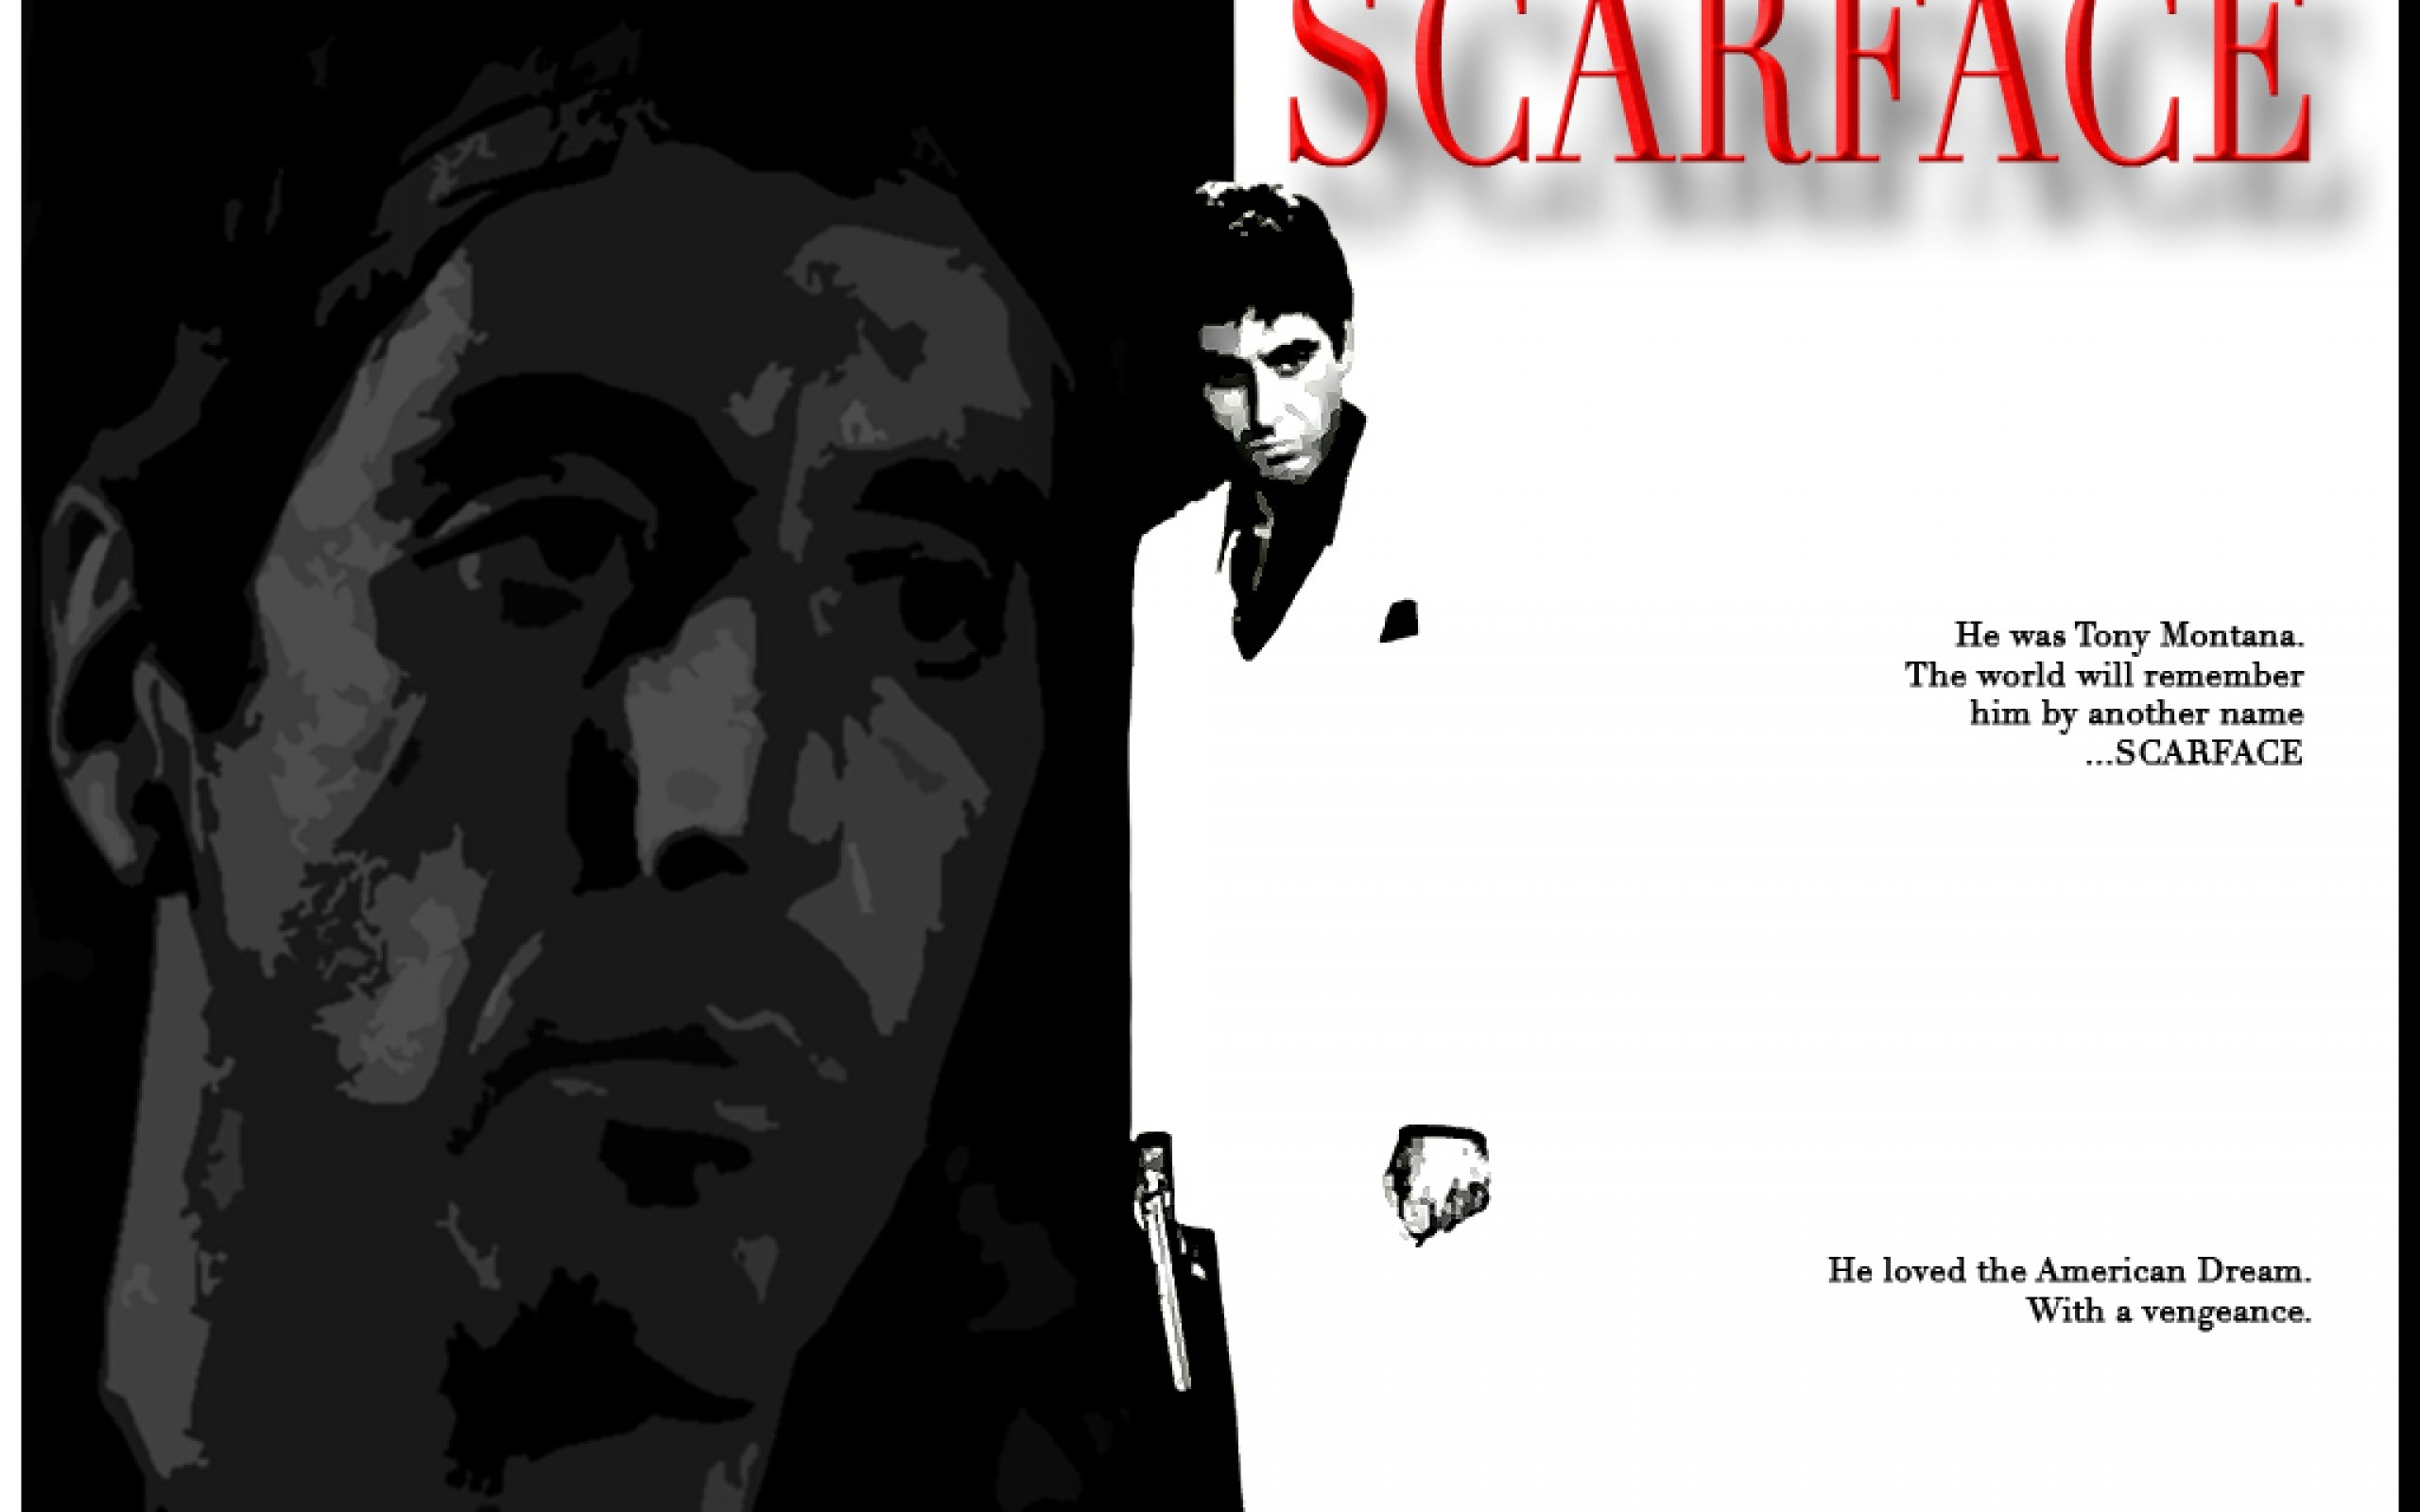 View All Scarface Wallpapers Money Tony Montana Scarface